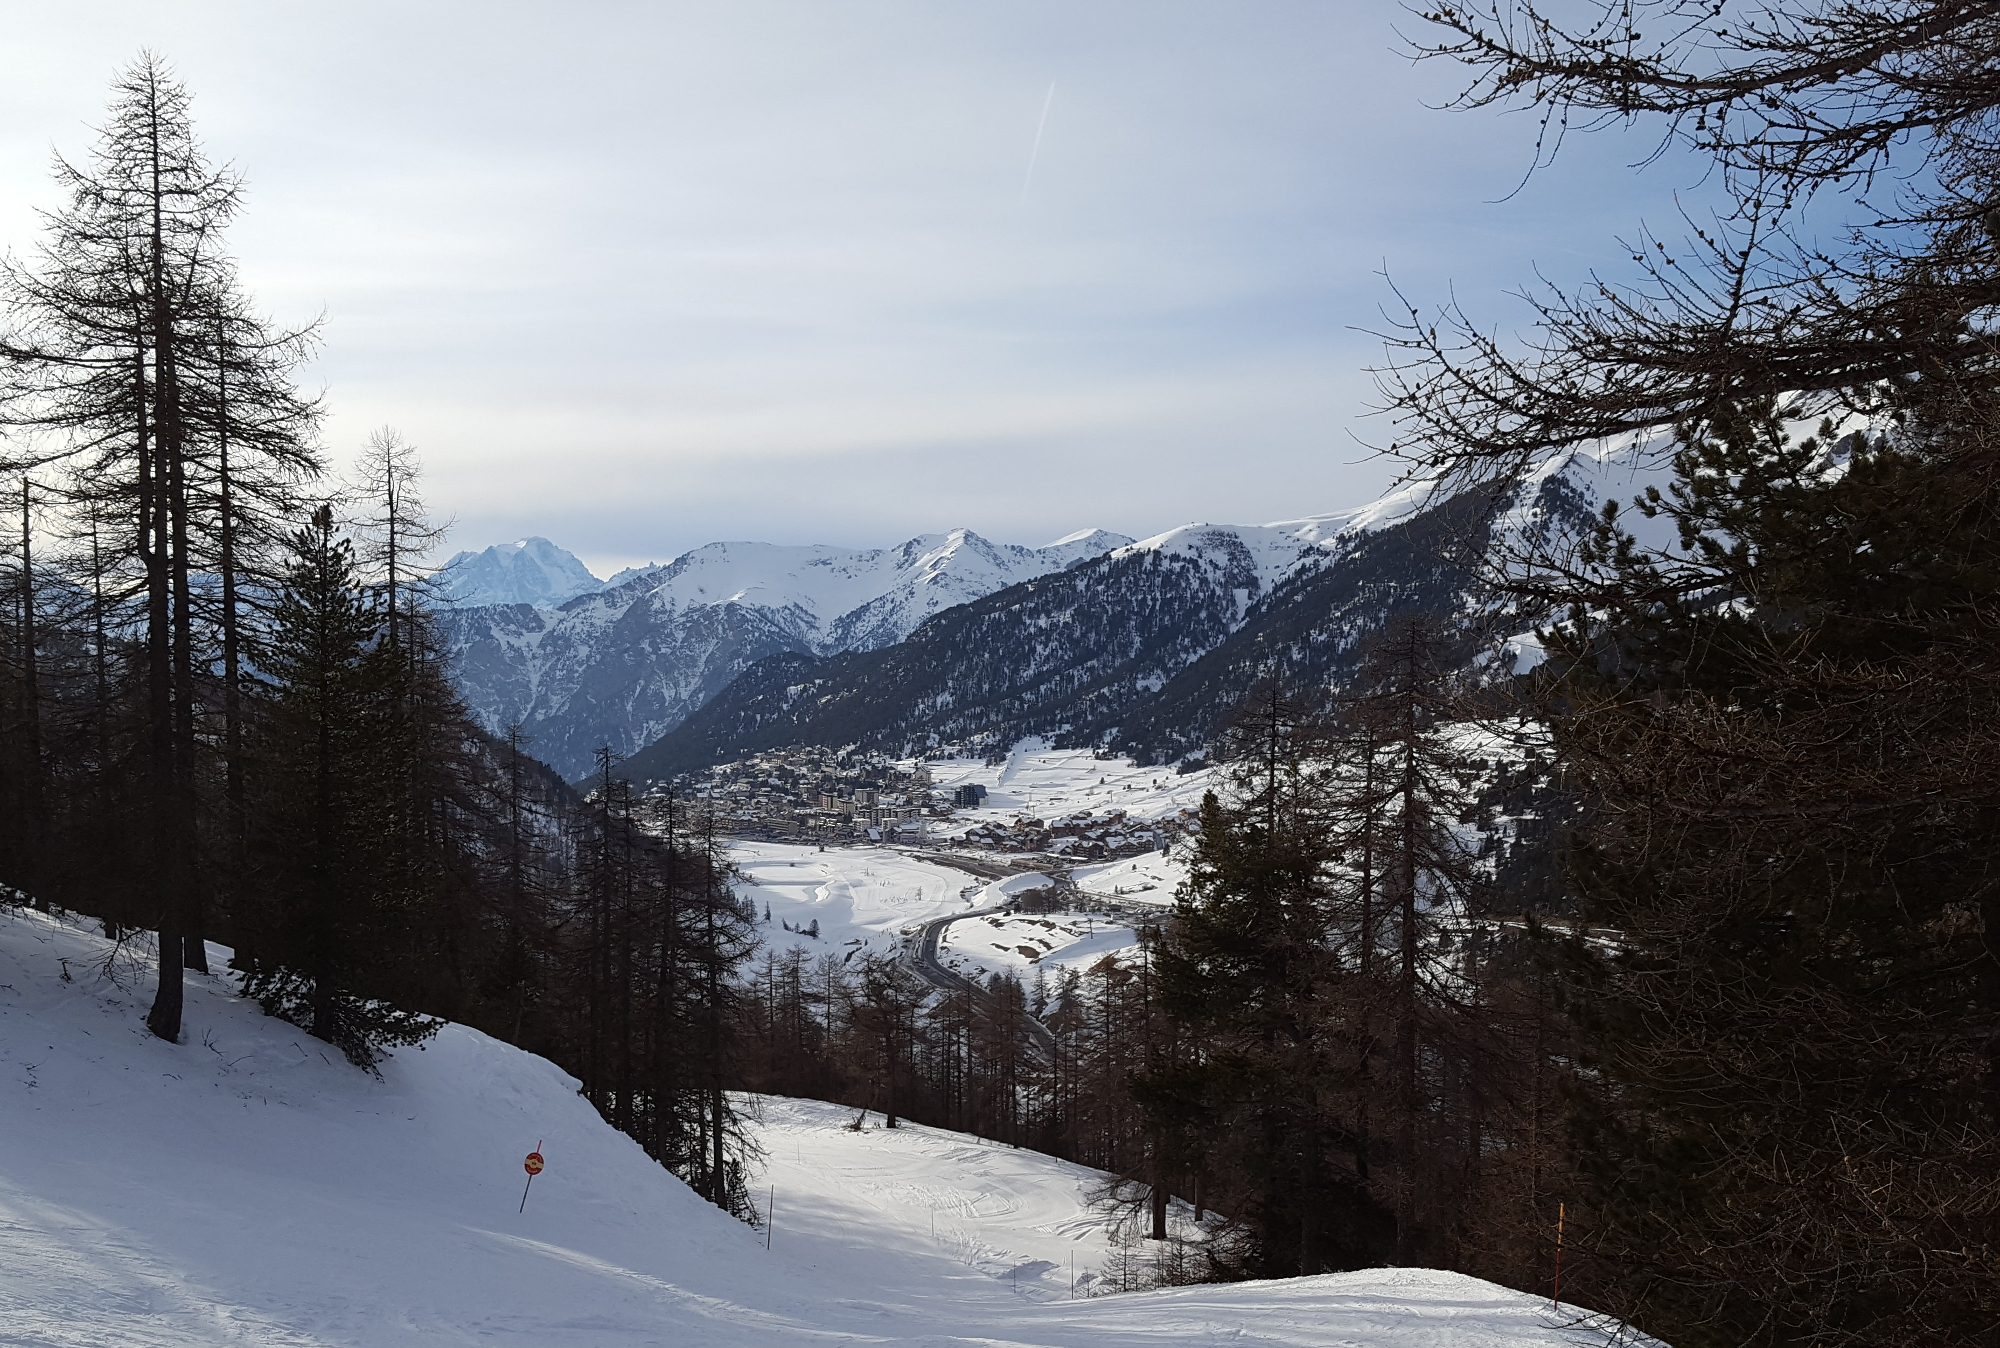 Looking down over the French resort of Montgenevre